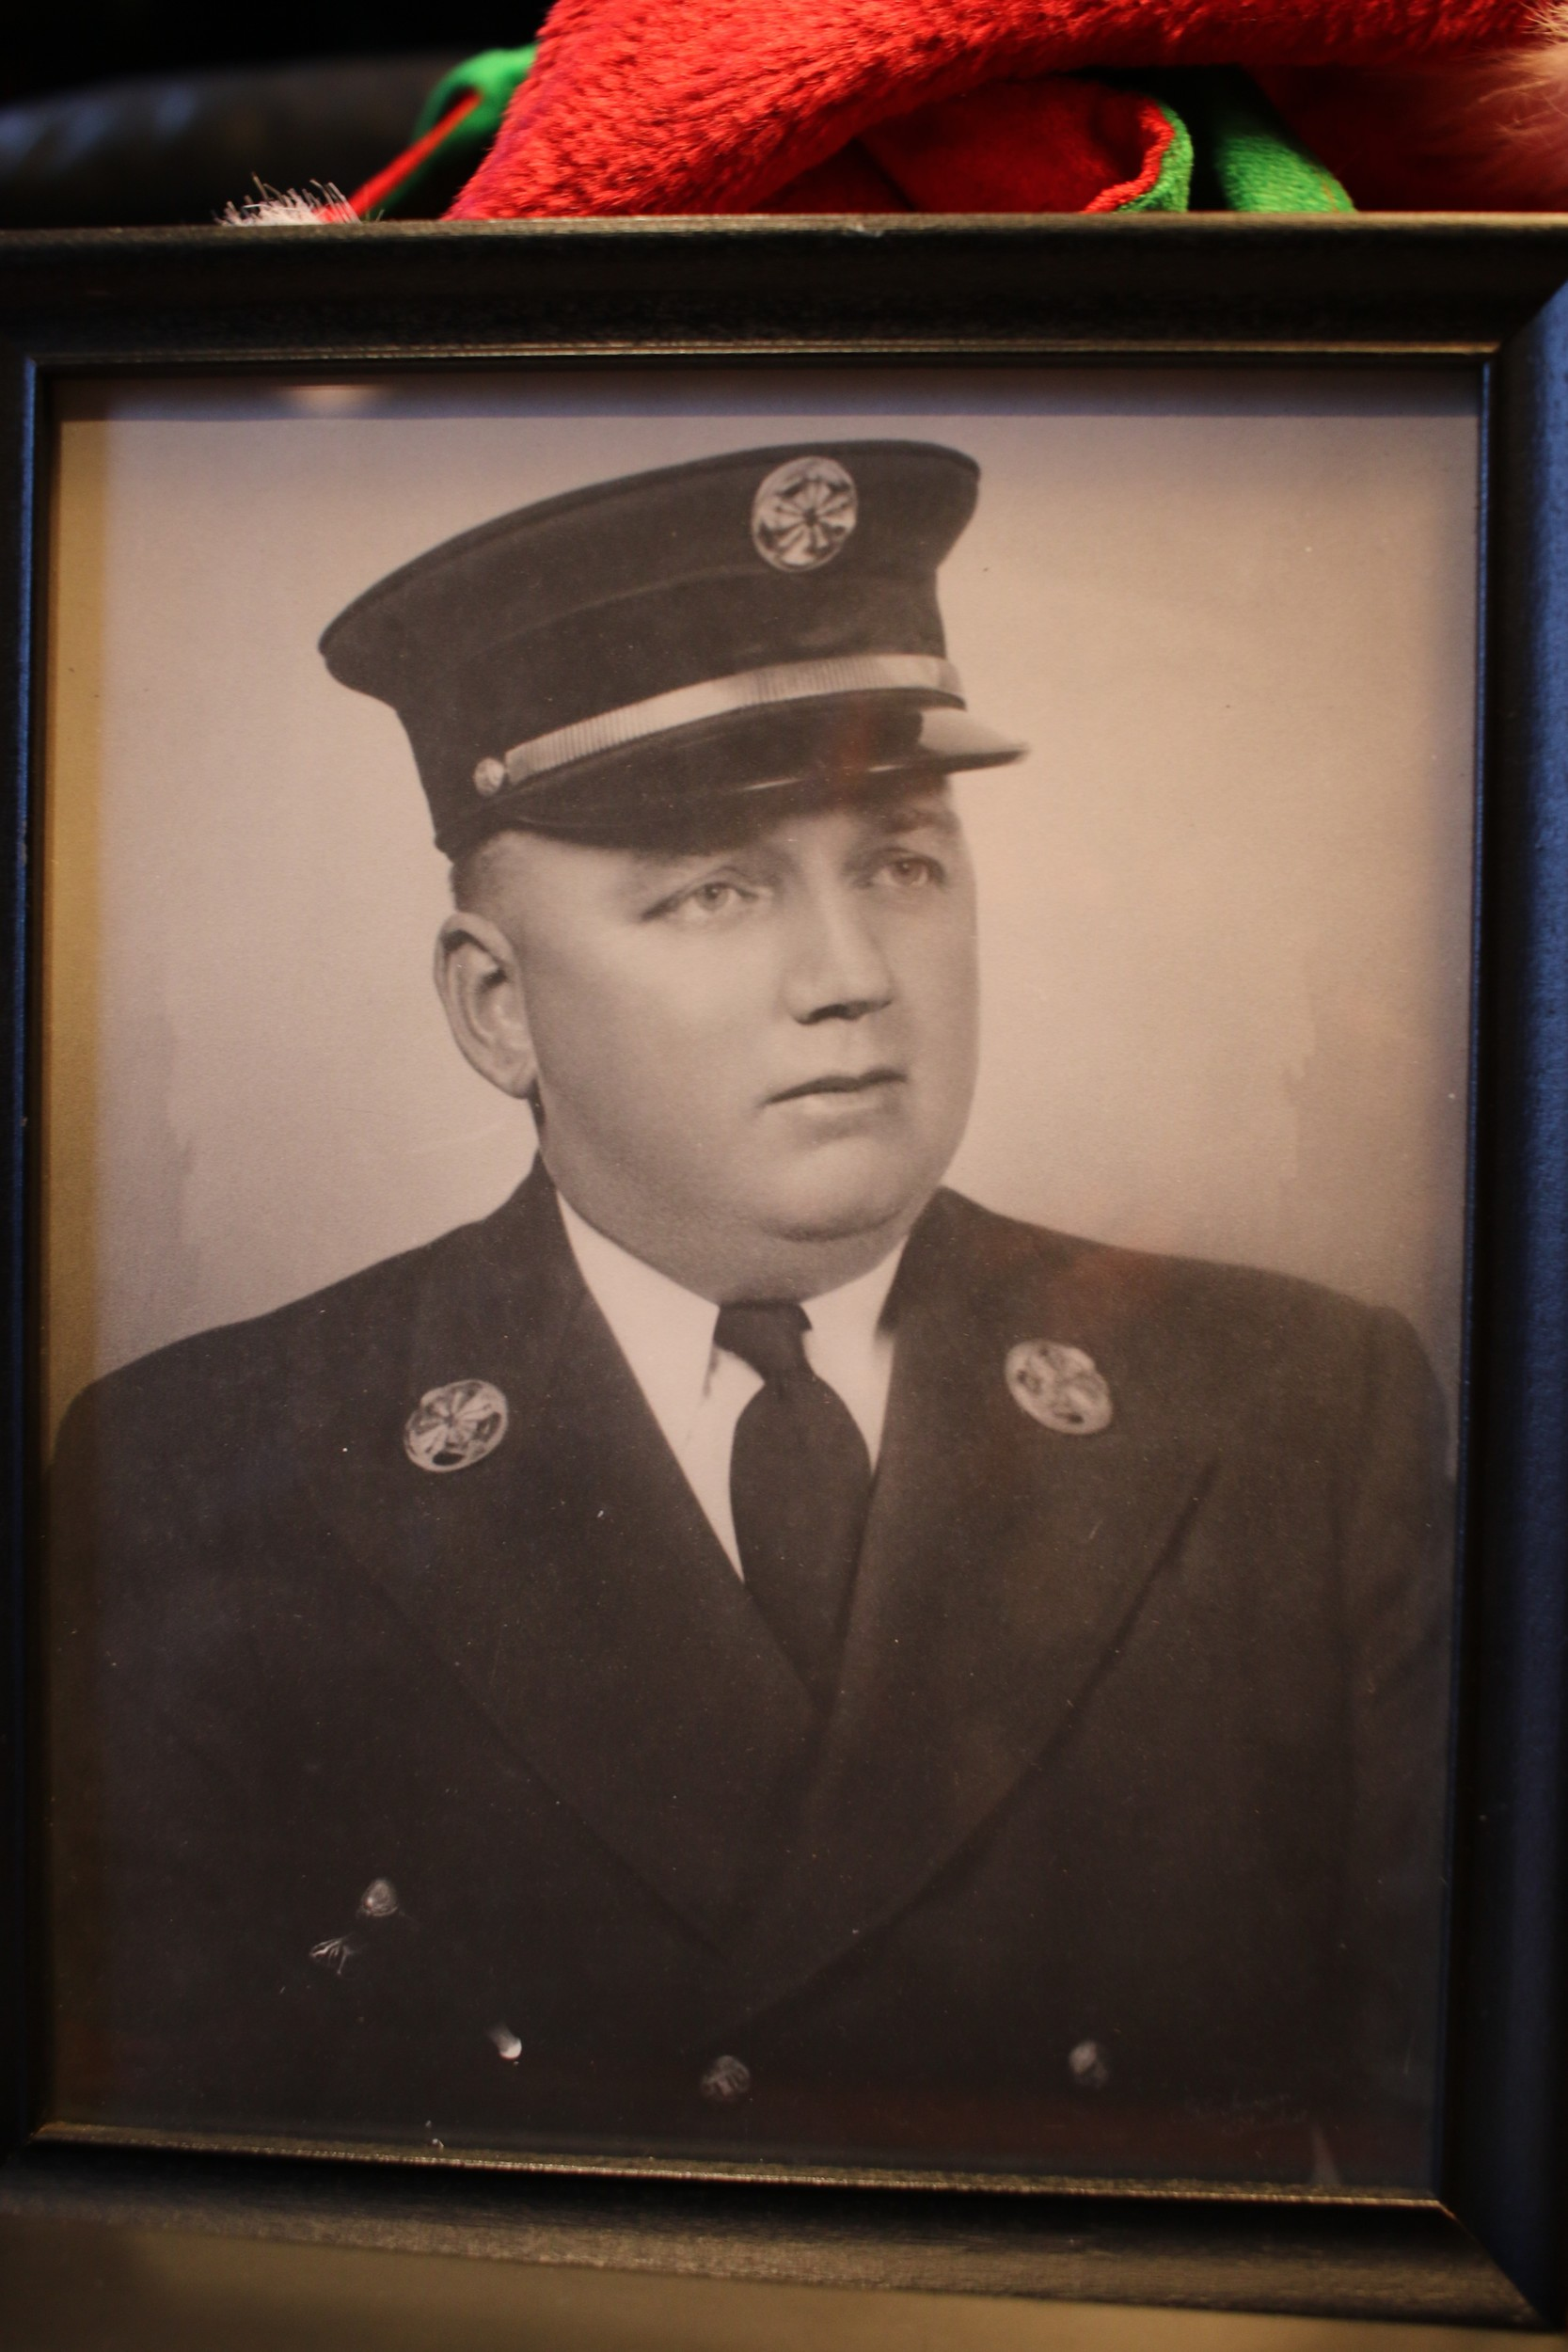 Kenneth L Lewis, Freeport's Fire Chief, 1943-1944